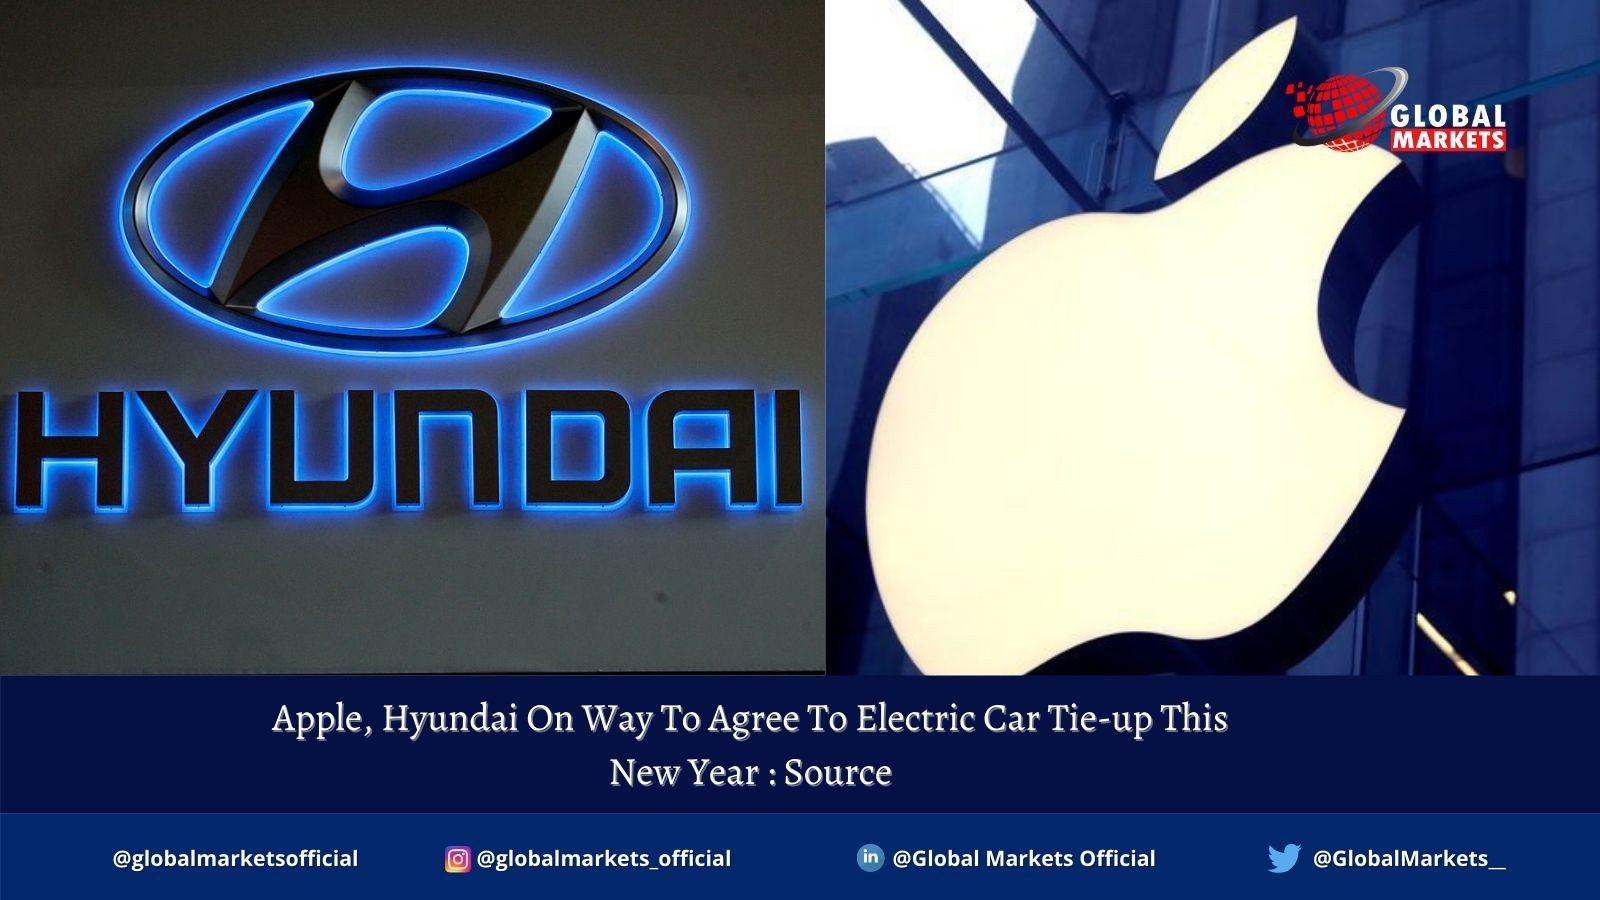 Apple, Hyundai On Way To Agree To Electric Car Tie-up This New Year : Source